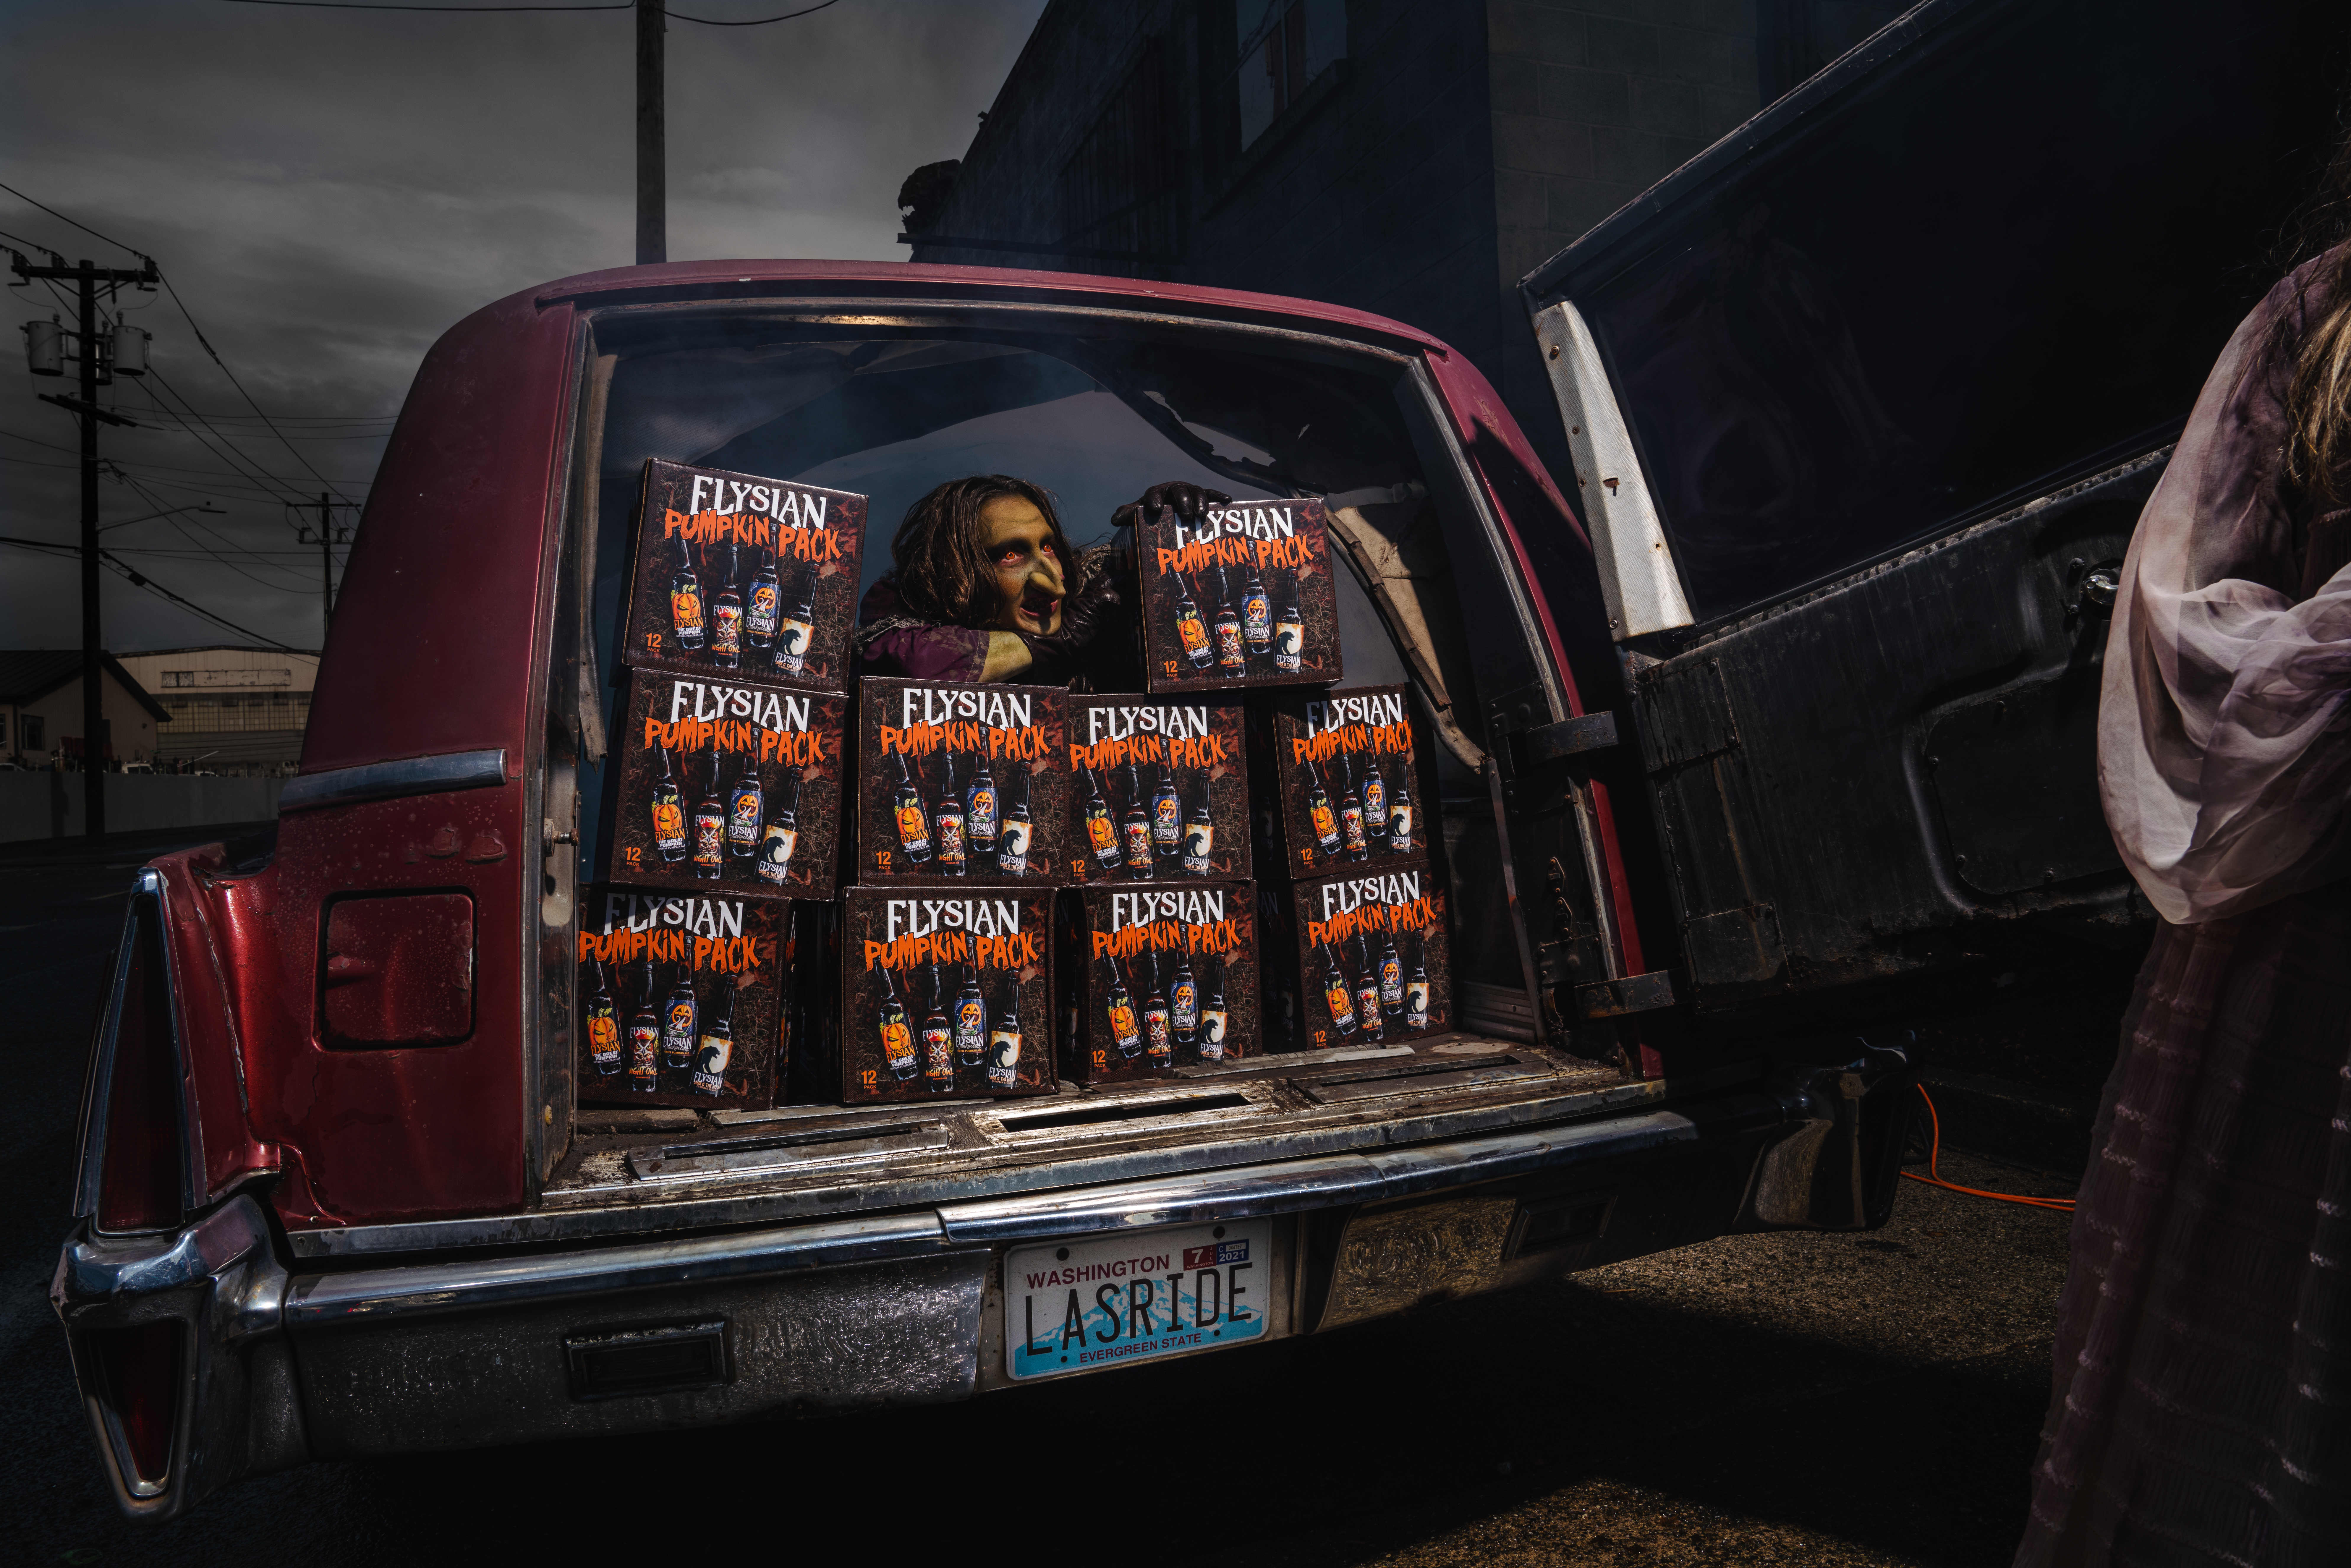 A ghoulish figure with red eyes and green skin peers from over a wall of beers in the back of a vehicle.